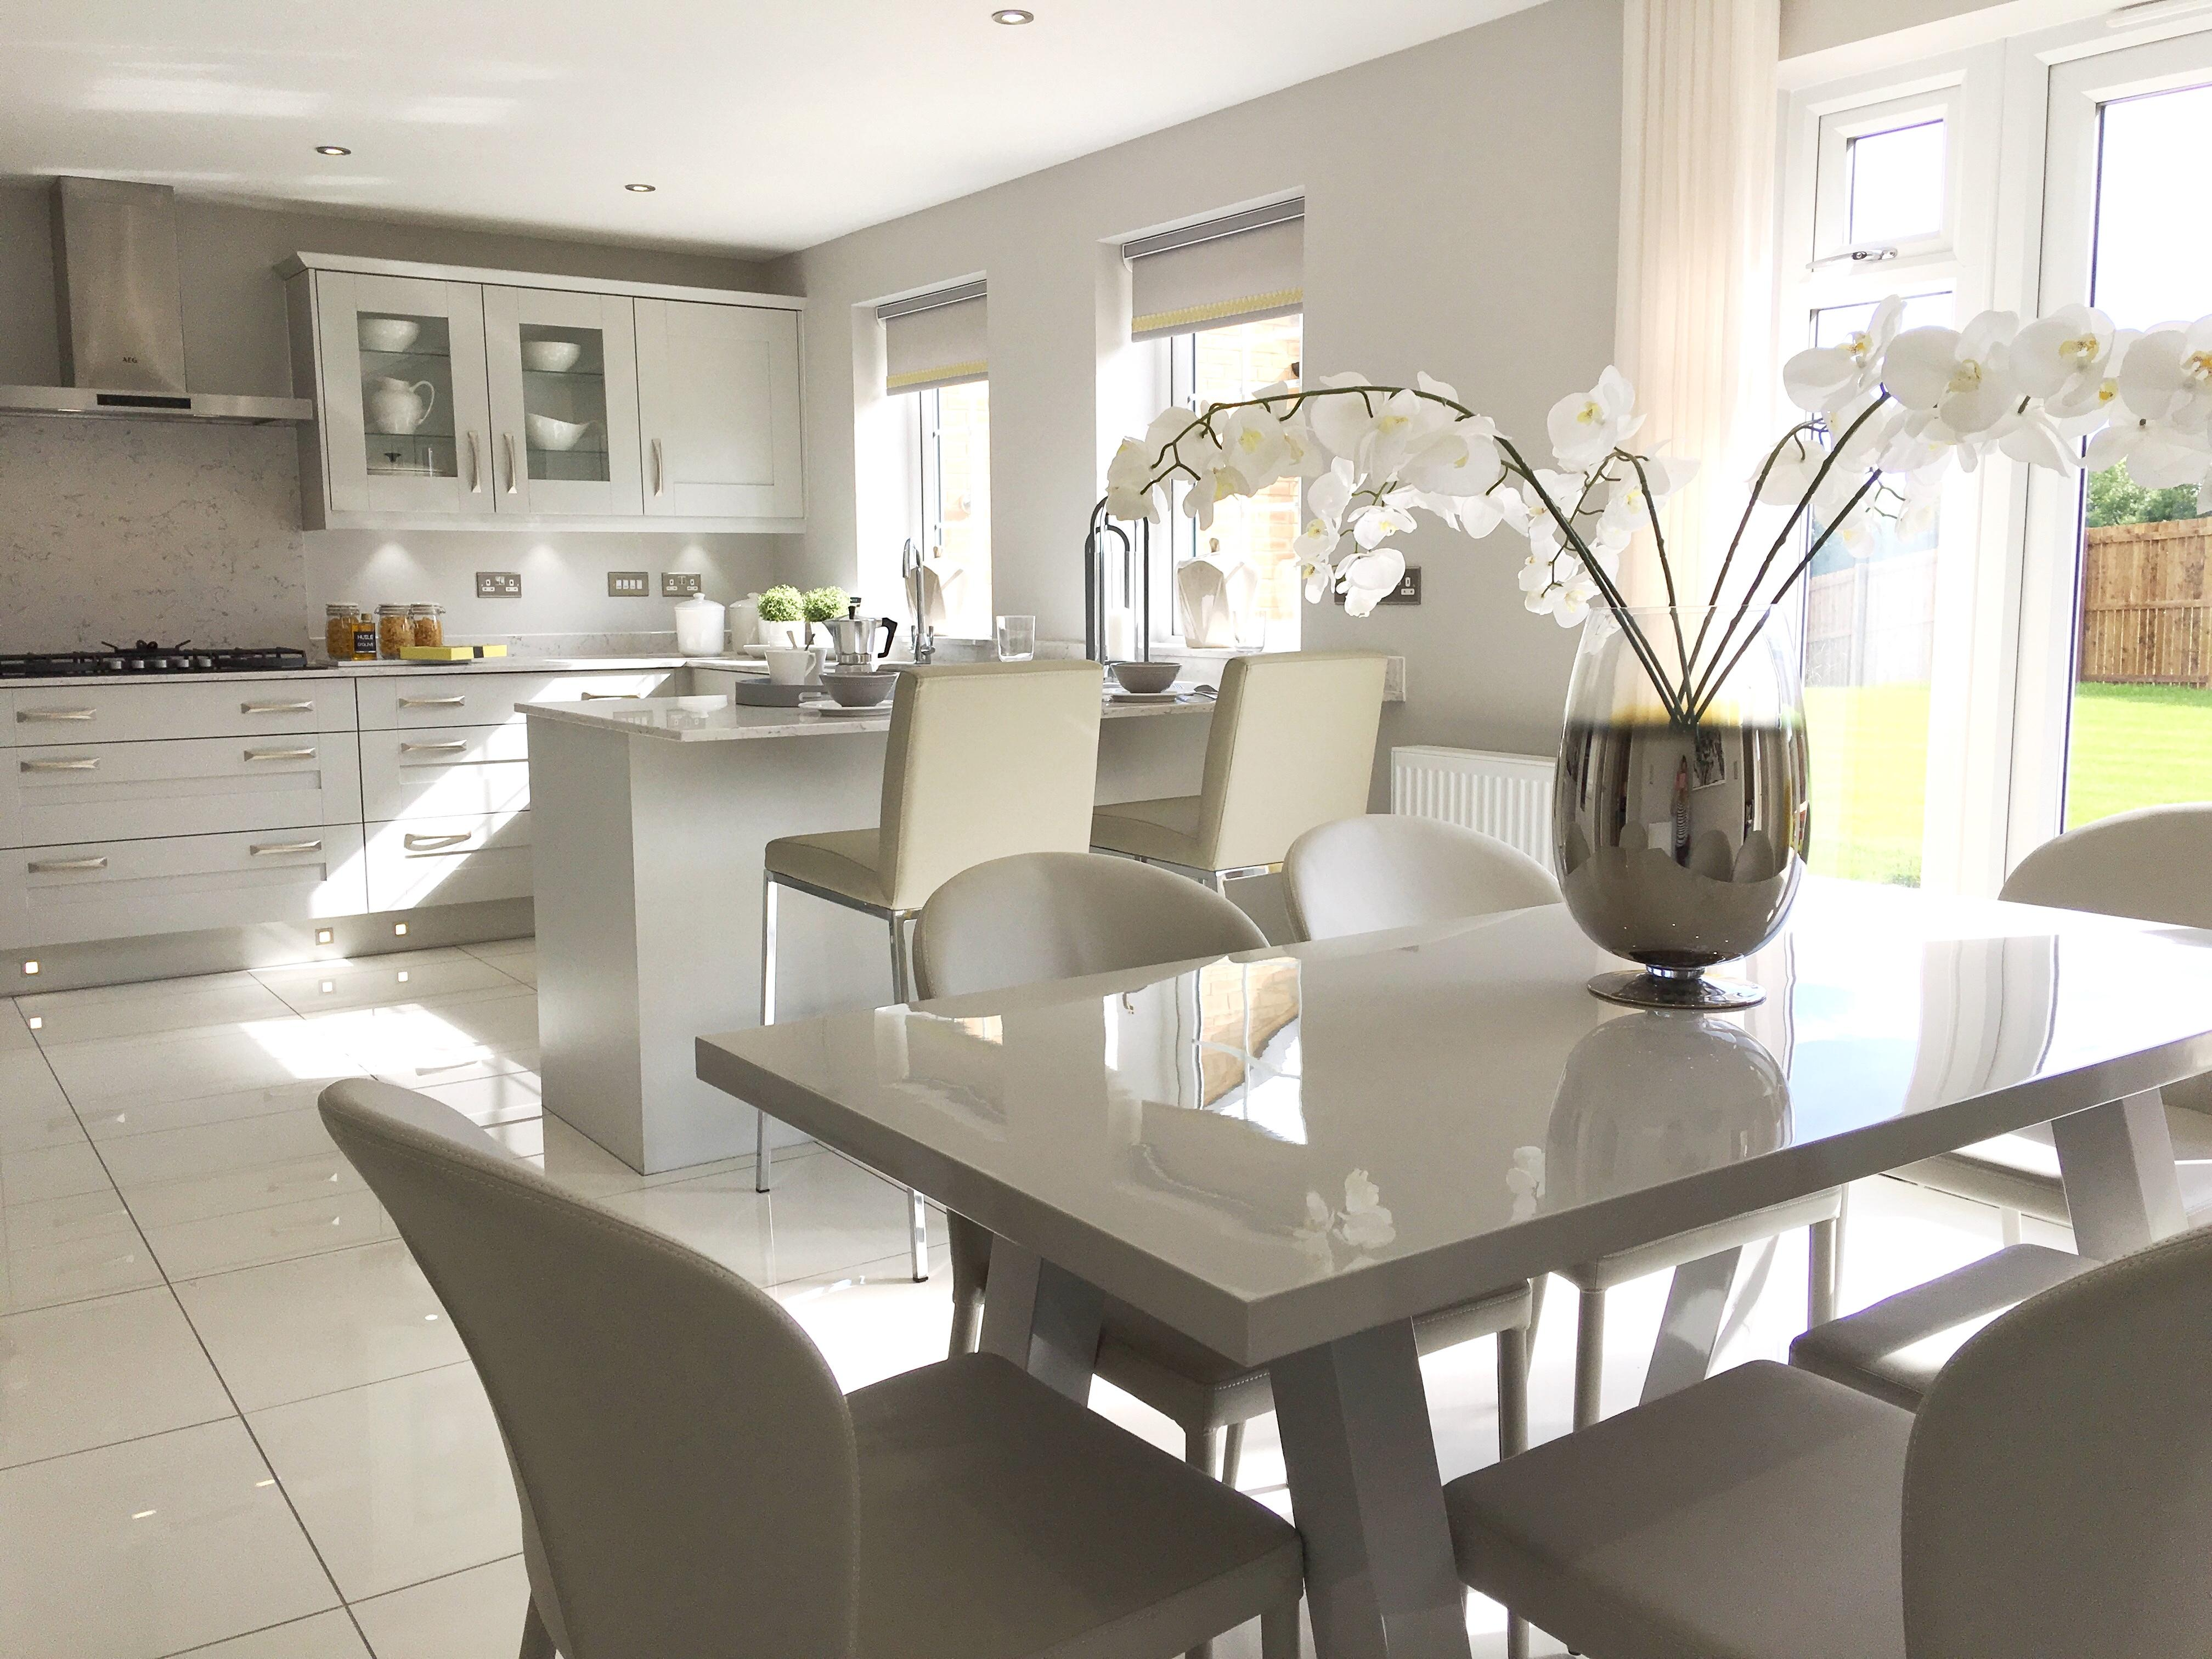 Louise has really made the most of this stunning open plan kitchen and dining area with the Elise Bar Stools, Santo Dining Chairs and Zen Grey Gloss 6 Seater Dining Table.